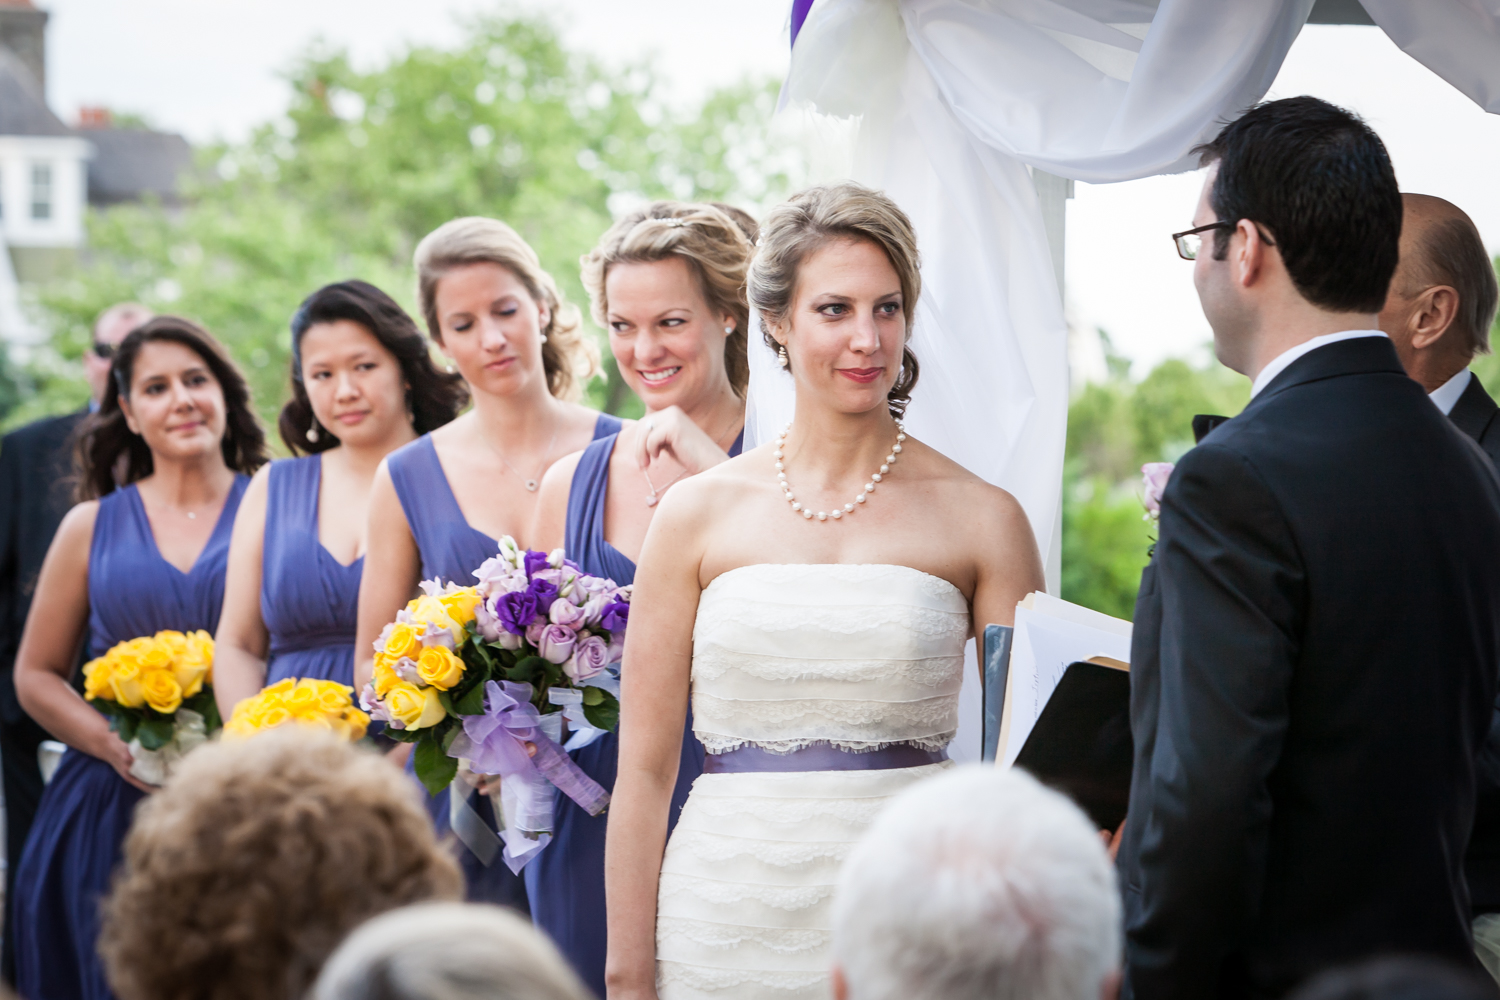 Bride and bridesmaids during ceremony at a Davenport Mansion wedding